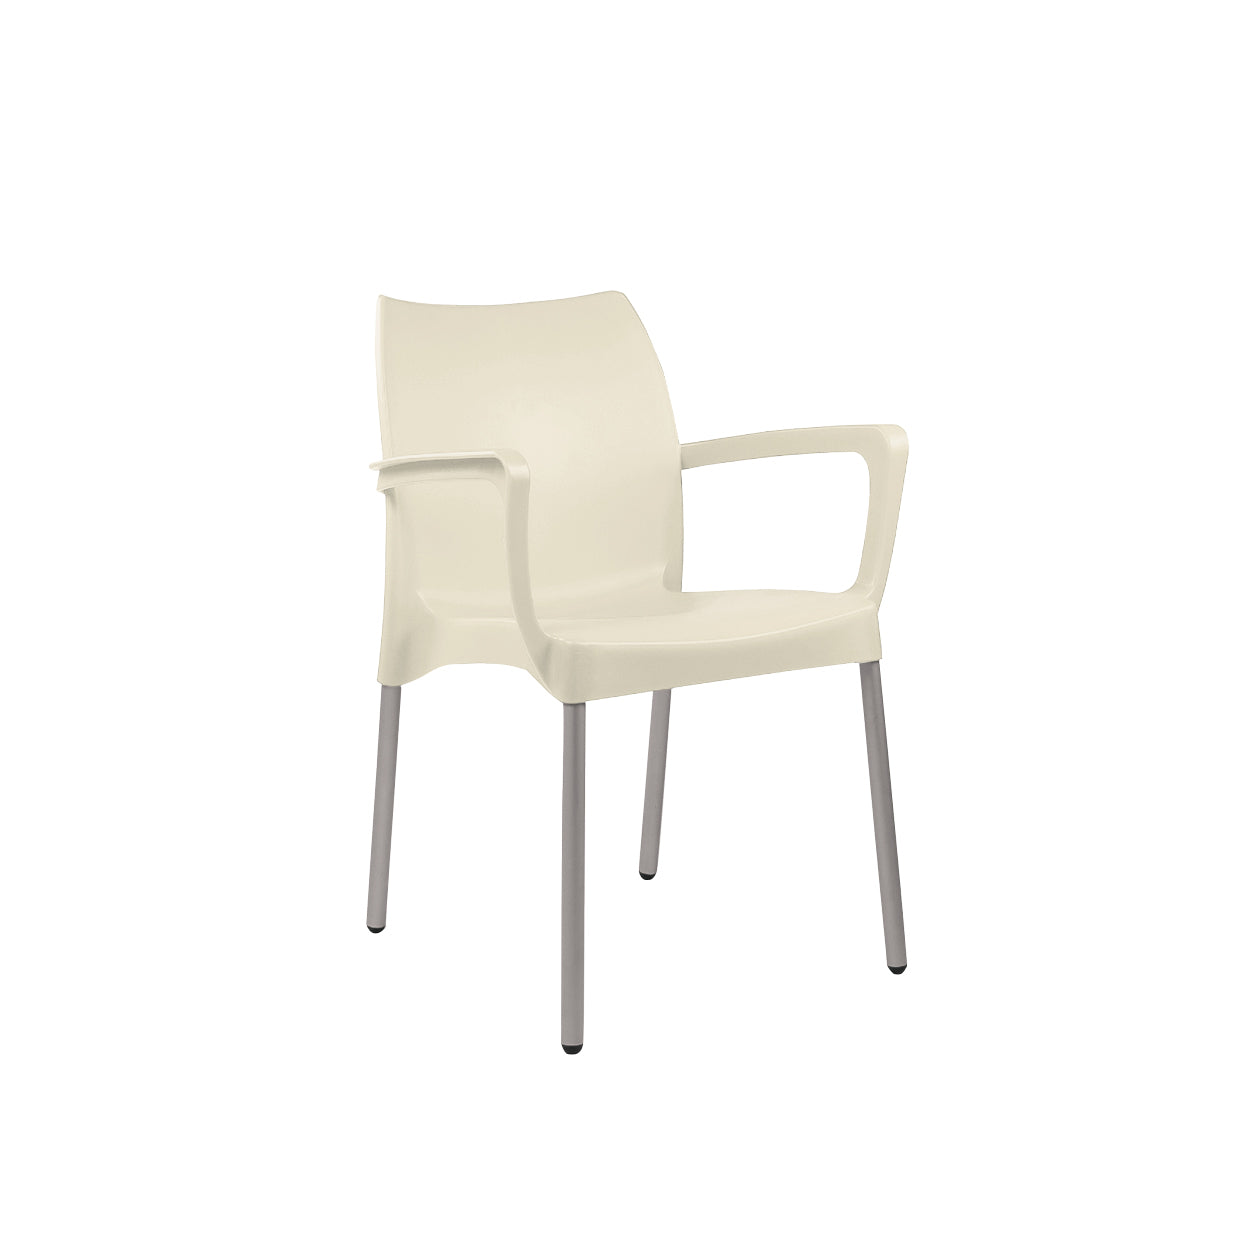 Hedcor Sage chair arm